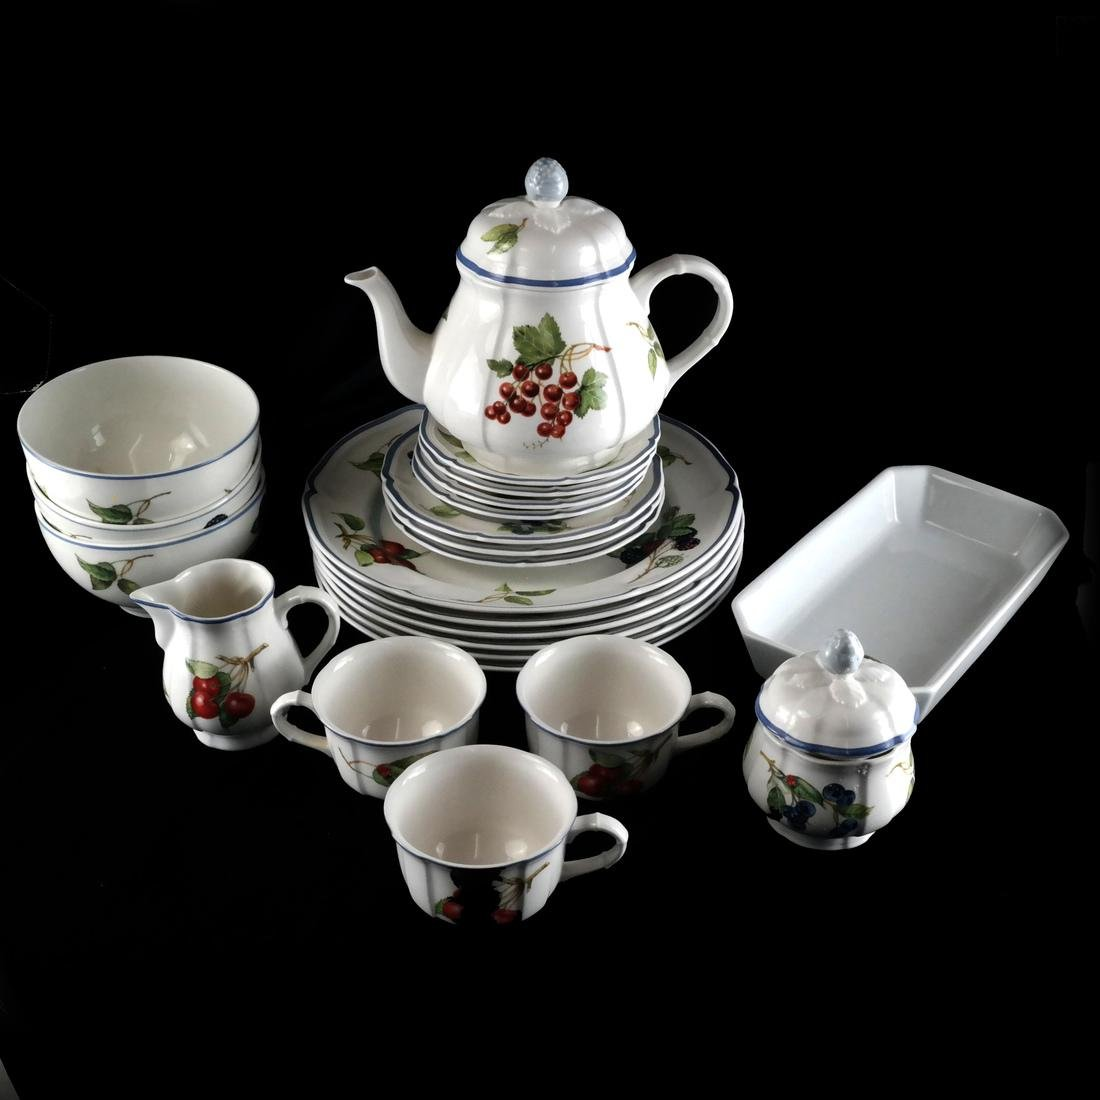 Villery and Boch, Germany: Partial Dinnerware